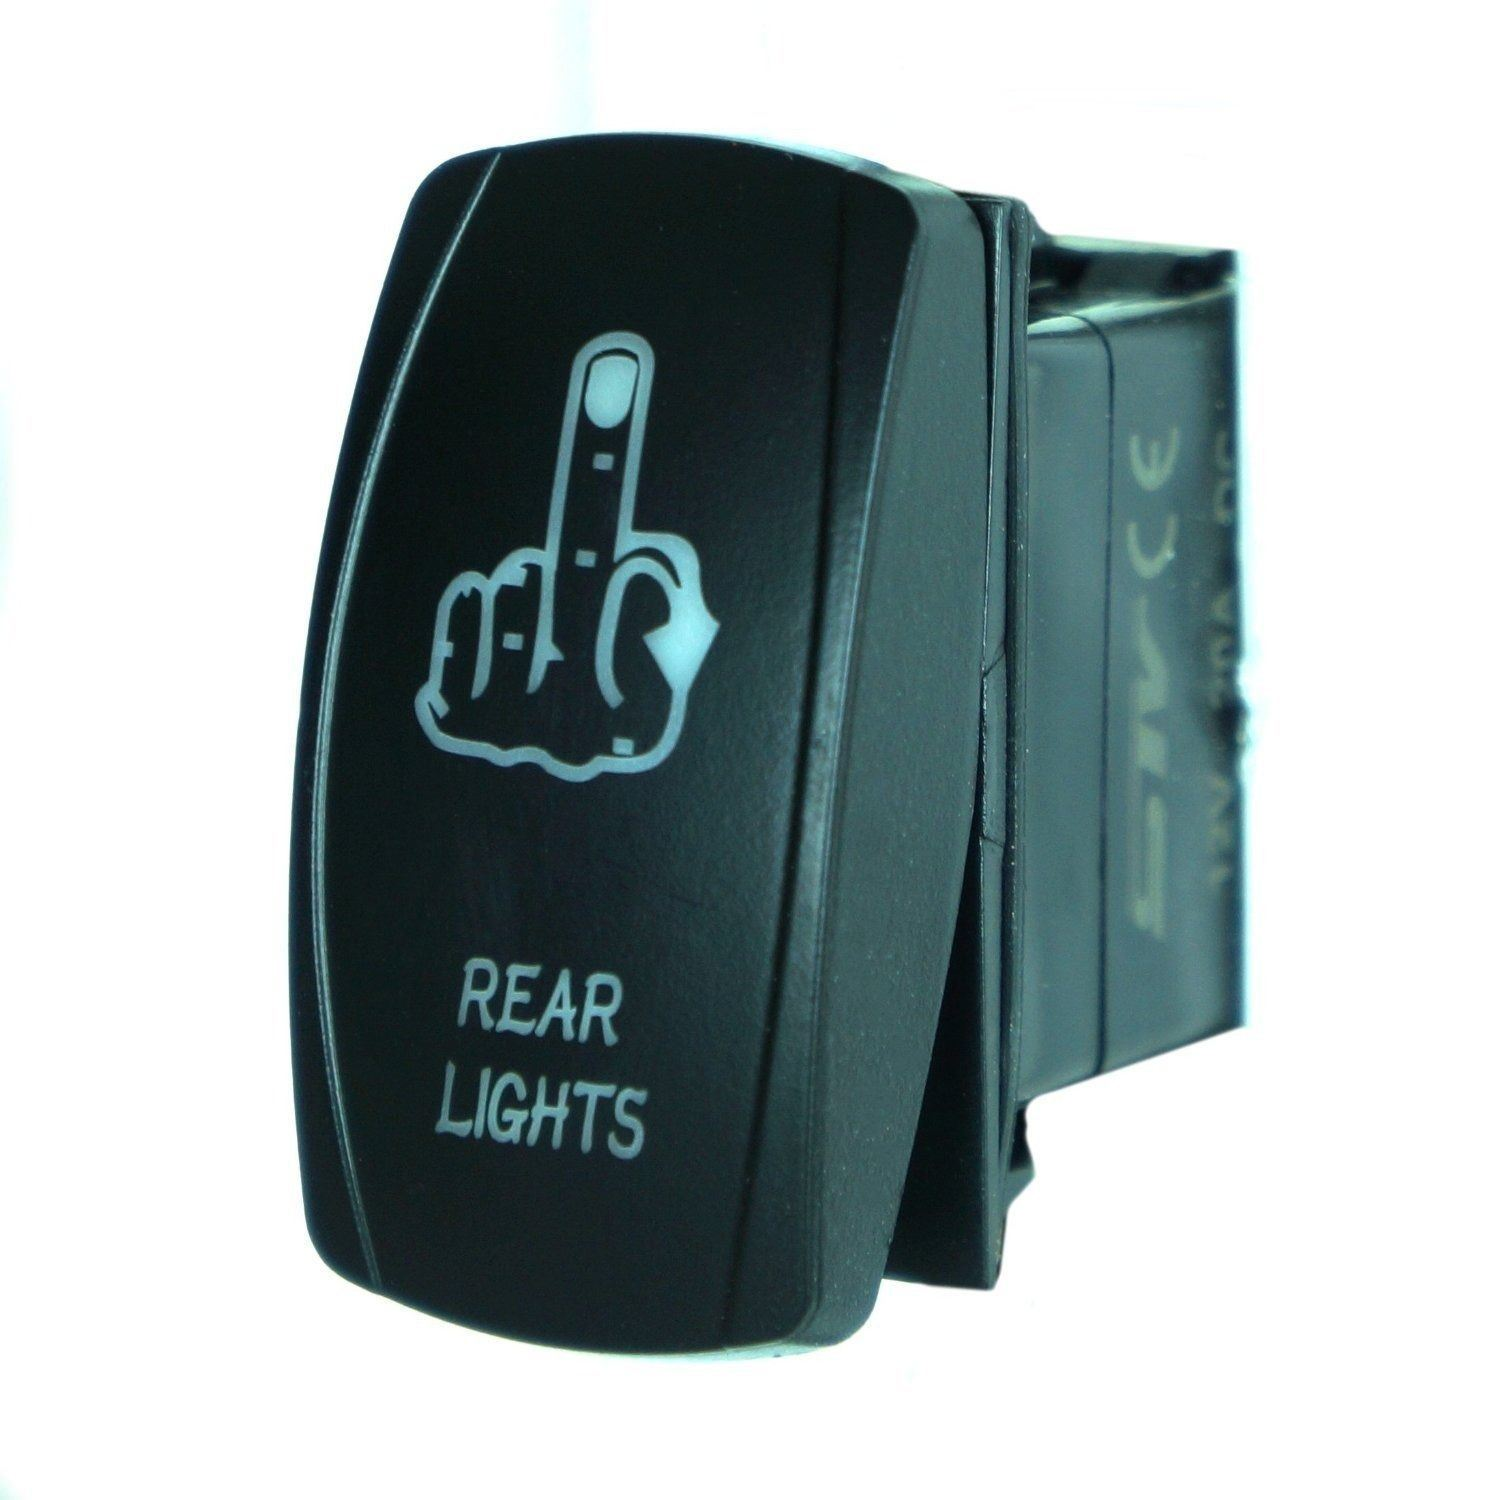 China Laser Blue Rocker Switch Finger Rear Lights 20A on/off LED ...